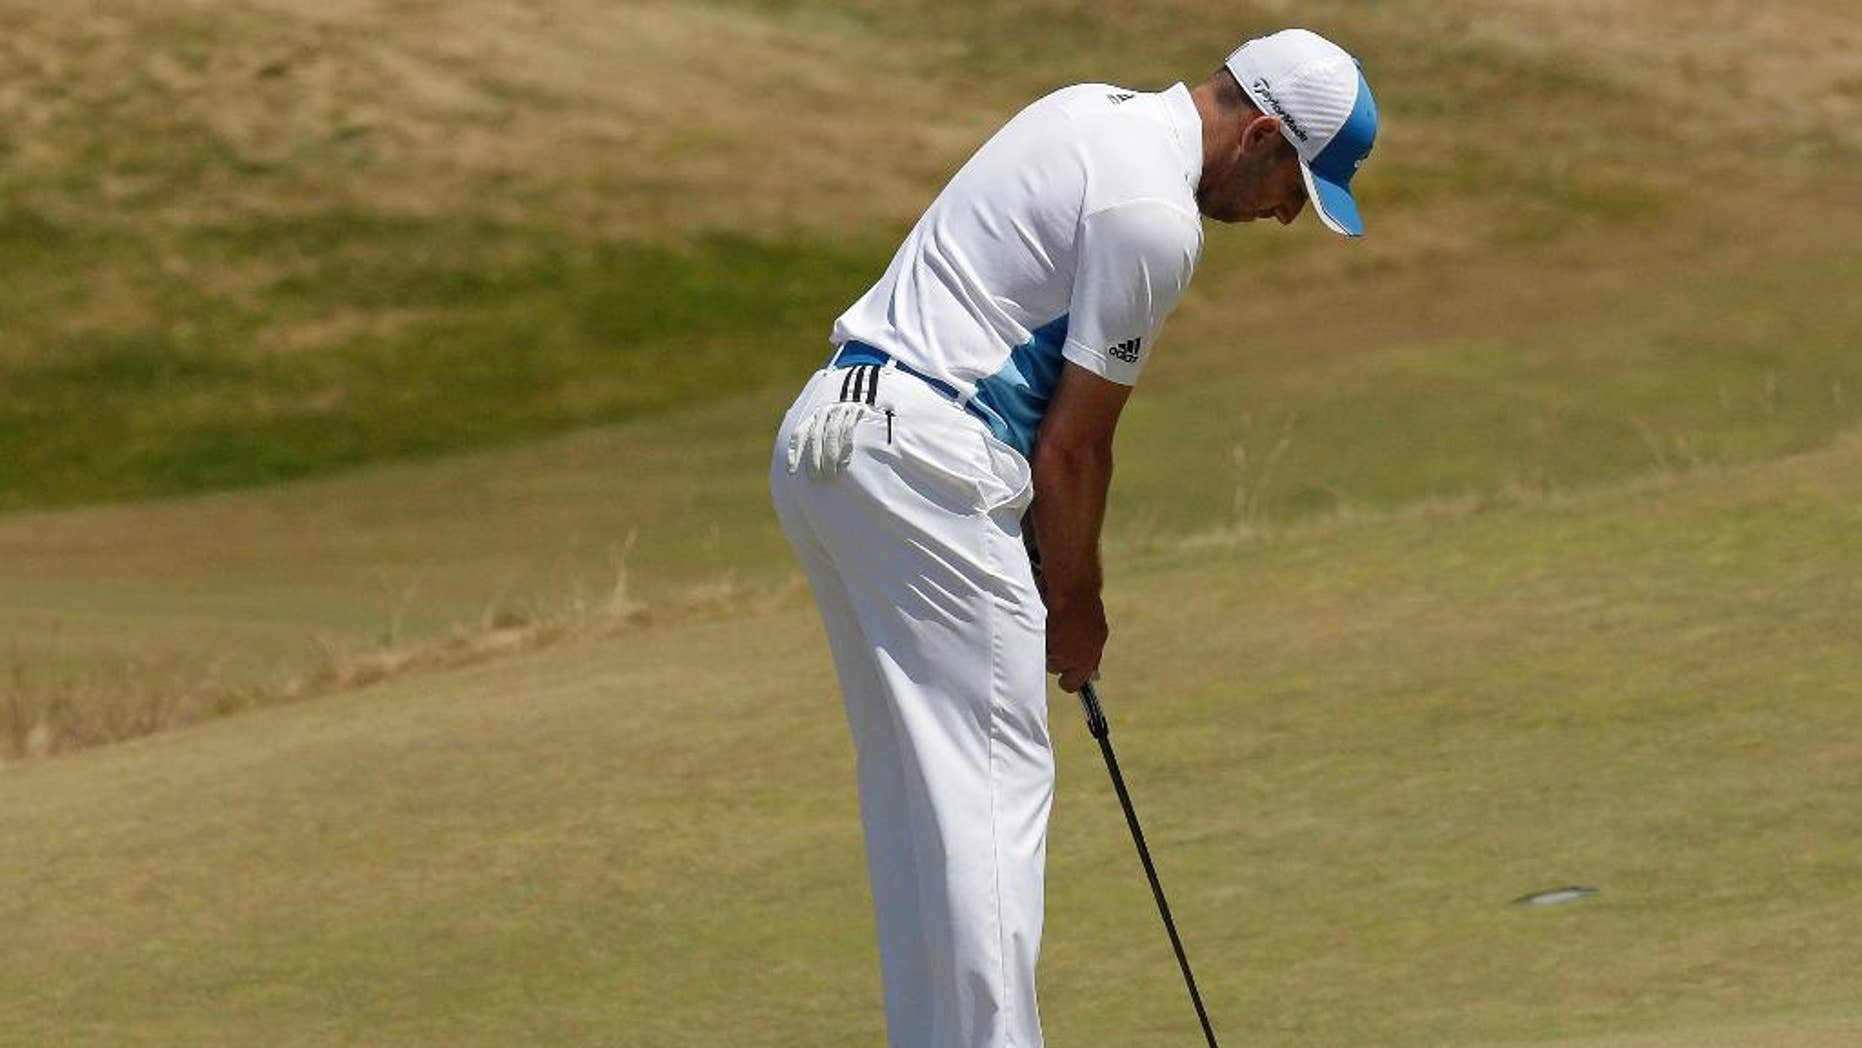 Sergio Garcia, of Spain, putts on the 17th hole during a practice round for the U.S. Open golf tournament at Chambers Bay on Wednesday, June 17, 2015 in University Place, Wash. (AP Photo/Charlie Riedel)